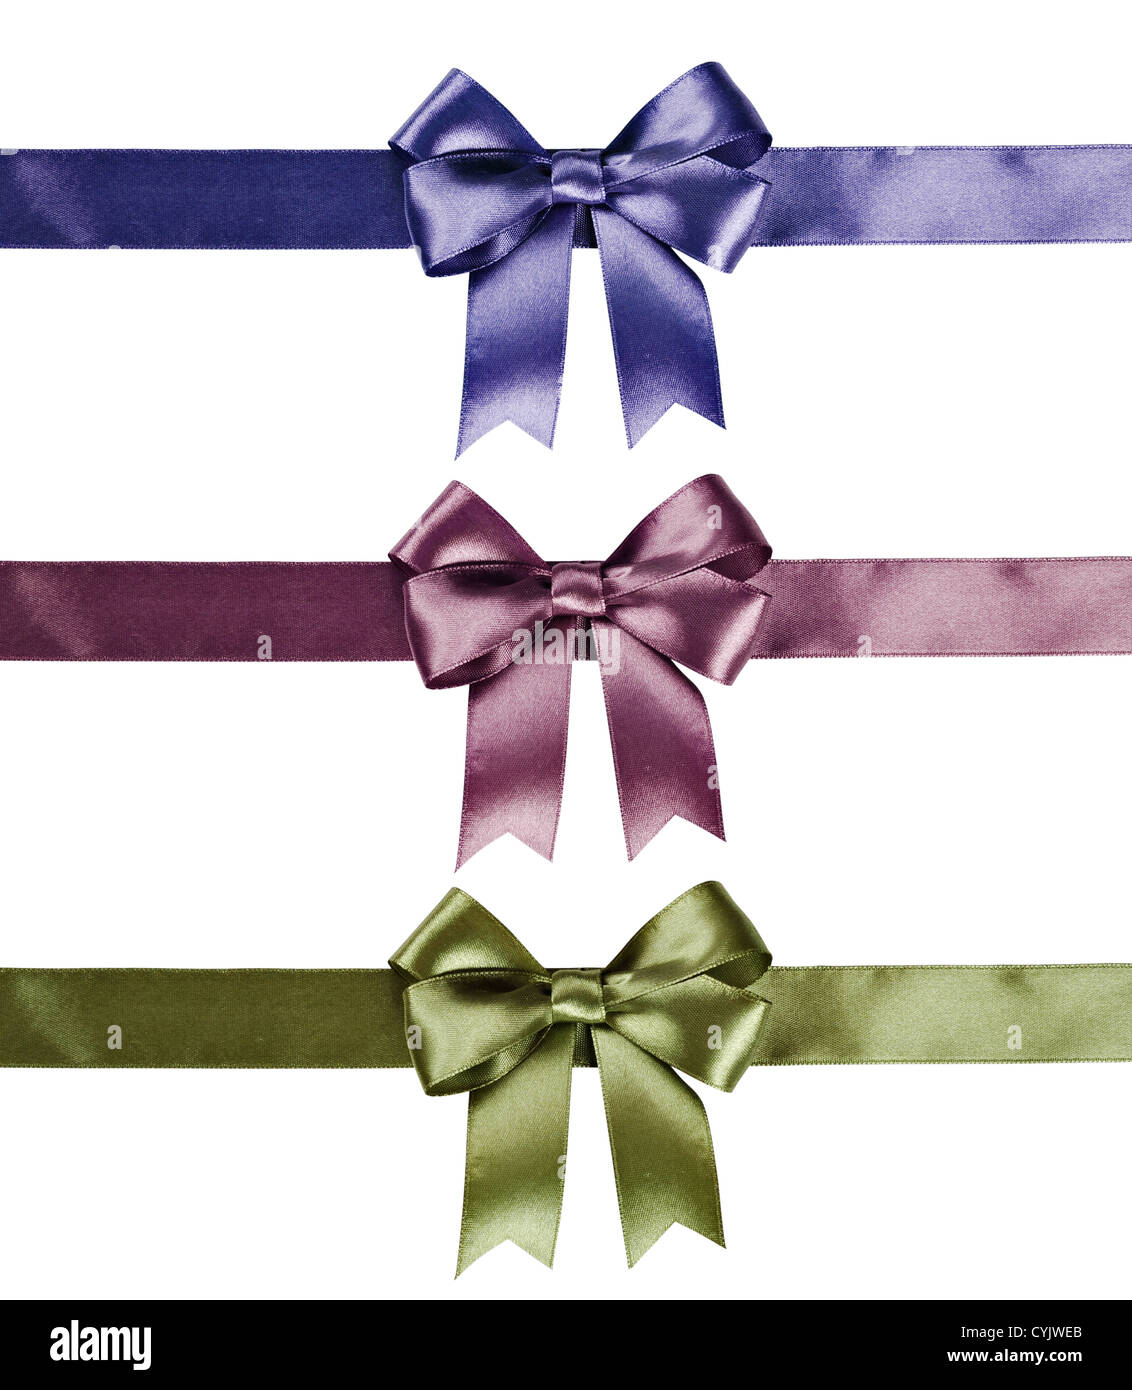 Set of ribbon bows - green, pink, violet on white background. Clipping path for each bow included. - Stock Image